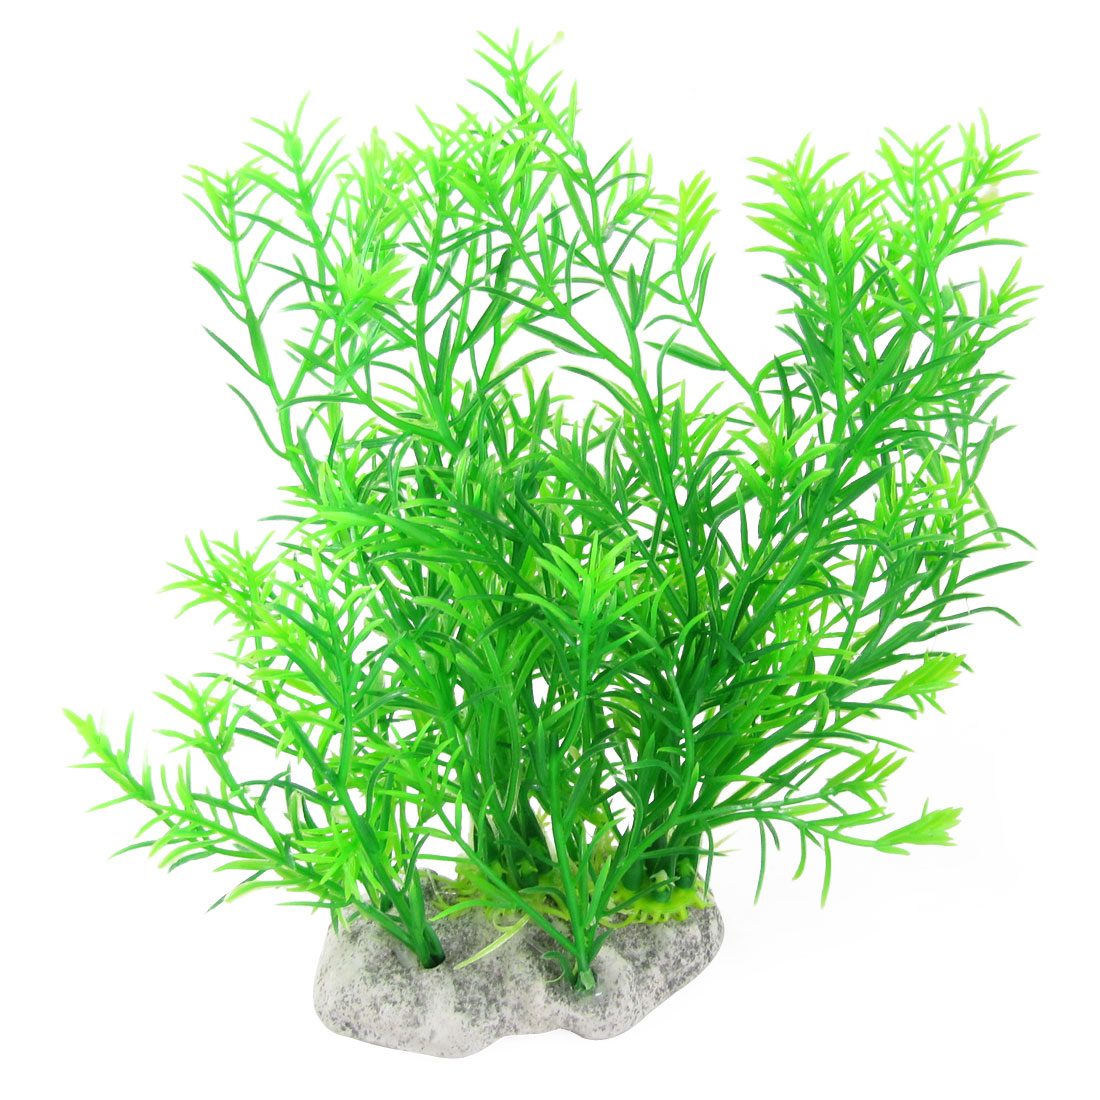 Oval Base Plastic Green Aquascaping Plants for Fish Tank